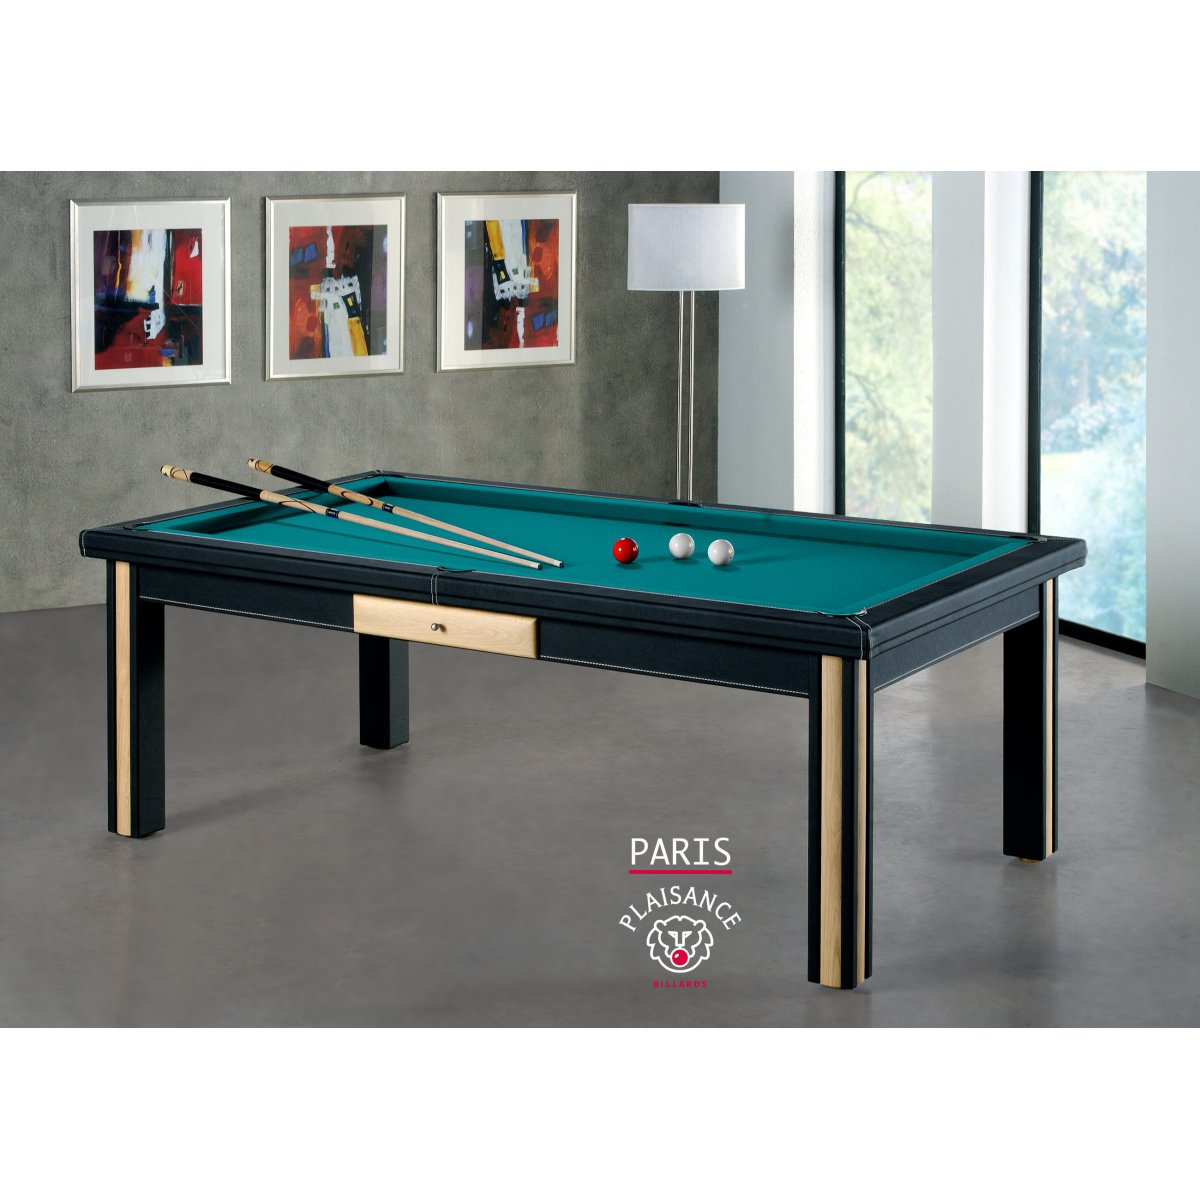 billard paris votre salle de billard paris dans votre salon. Black Bedroom Furniture Sets. Home Design Ideas